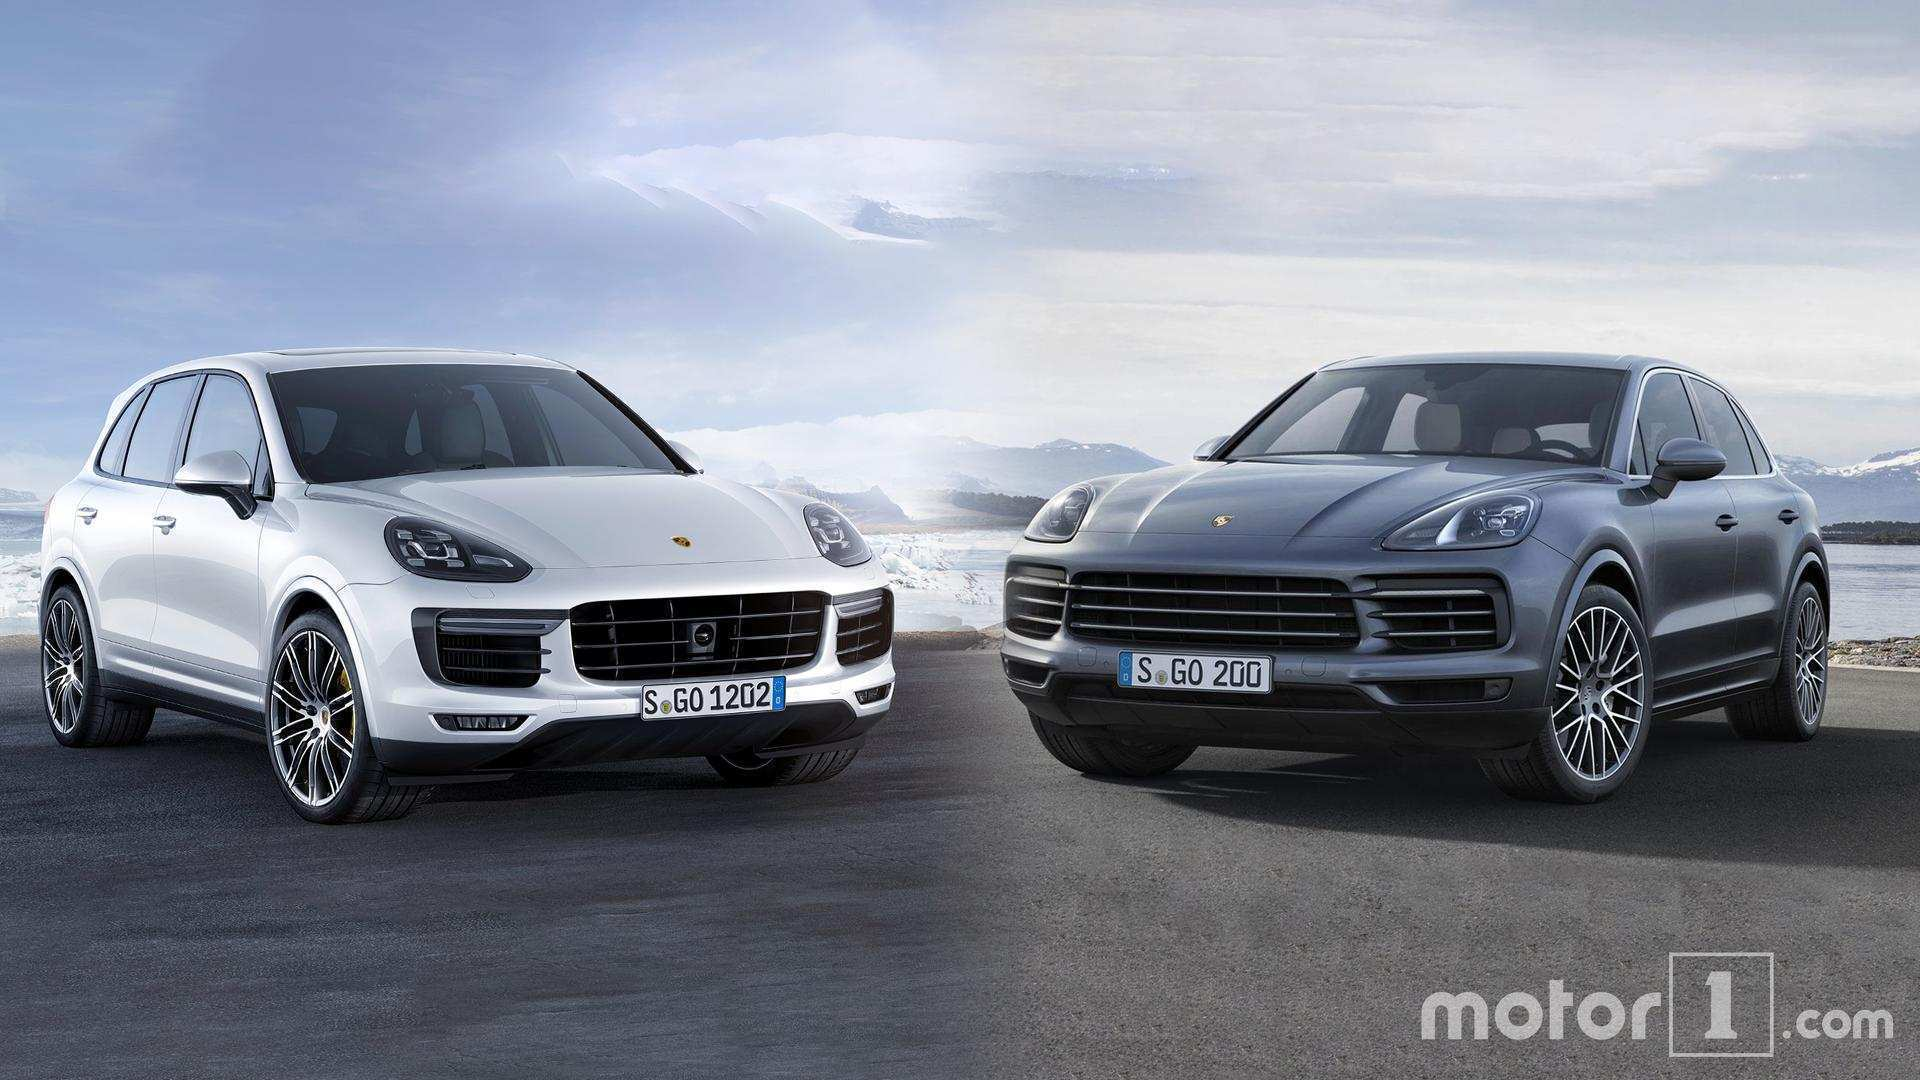 13 Great 2018 Vs 2019 Porsche Cayenne Redesign with 2018 Vs 2019 Porsche Cayenne